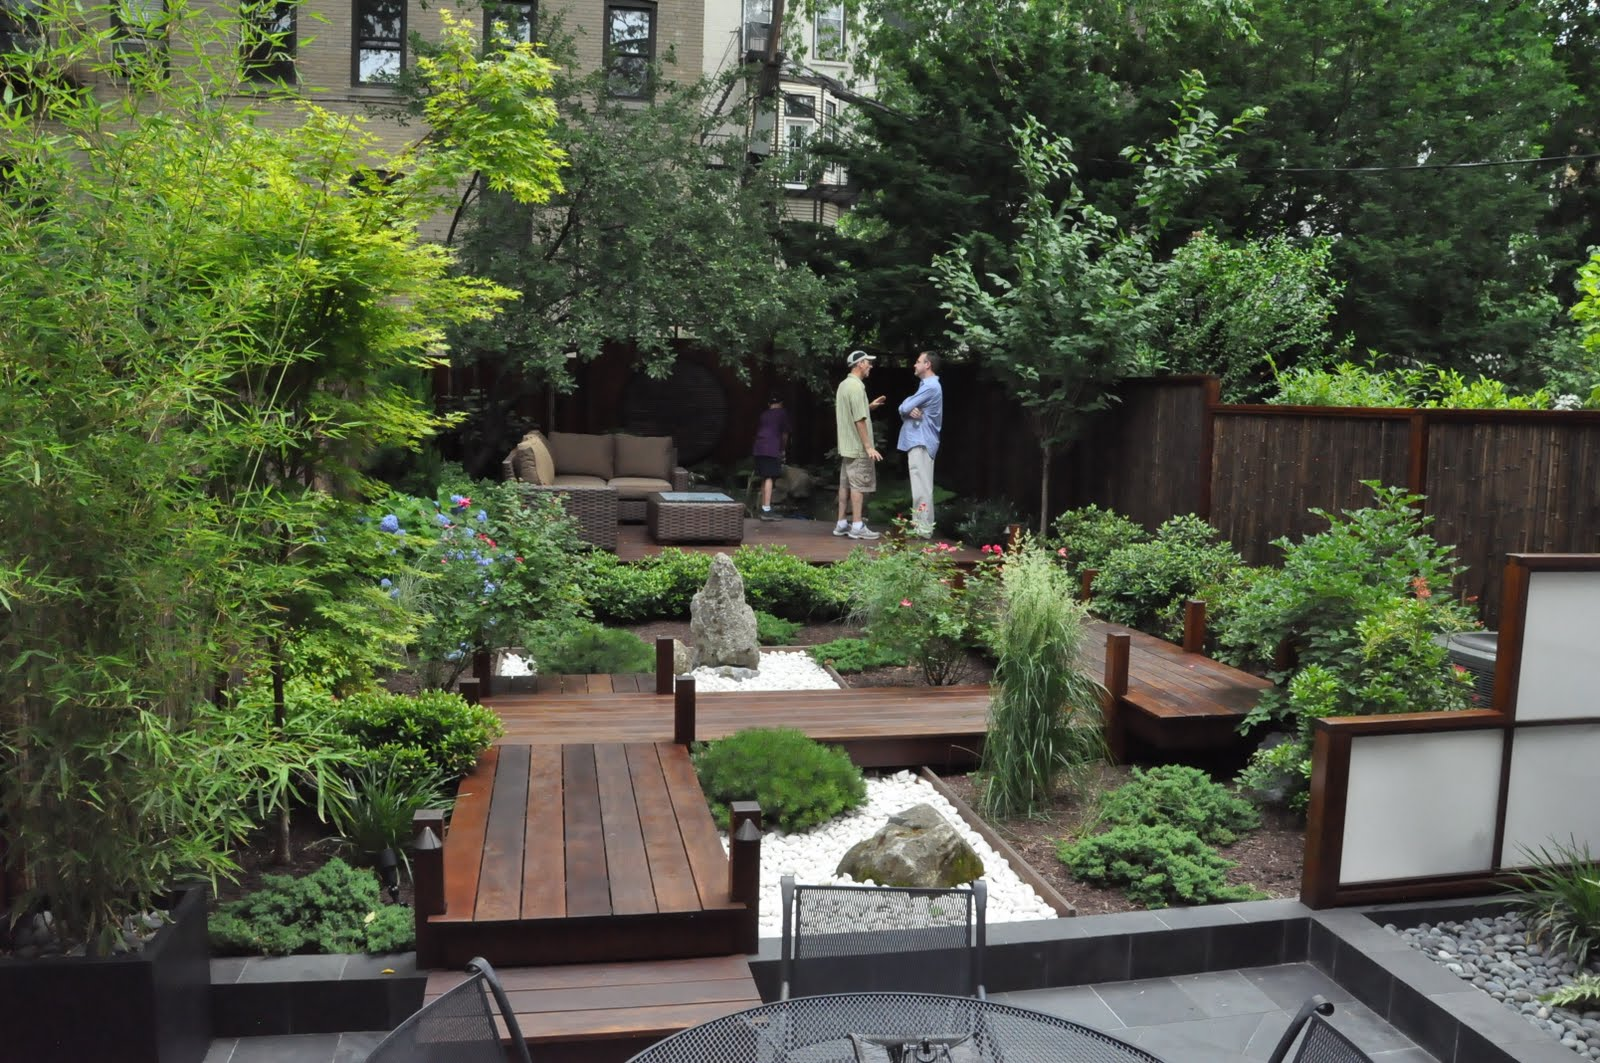 Small Backyard Japanese Garden Ideas  Ztil News. Backyard Bbq Side Ideas. Kitchen Cabinets Ideas Diy. Decorating Ideas For Kitchen Plant Shelves. Backyard Ideas Shade. Nursery Ideas Chevron. Real Home Bathroom Ideas. Kitchen Cabinet Color Ideas With Black Granite. Color Ideas For Kitchen With White Cabinets